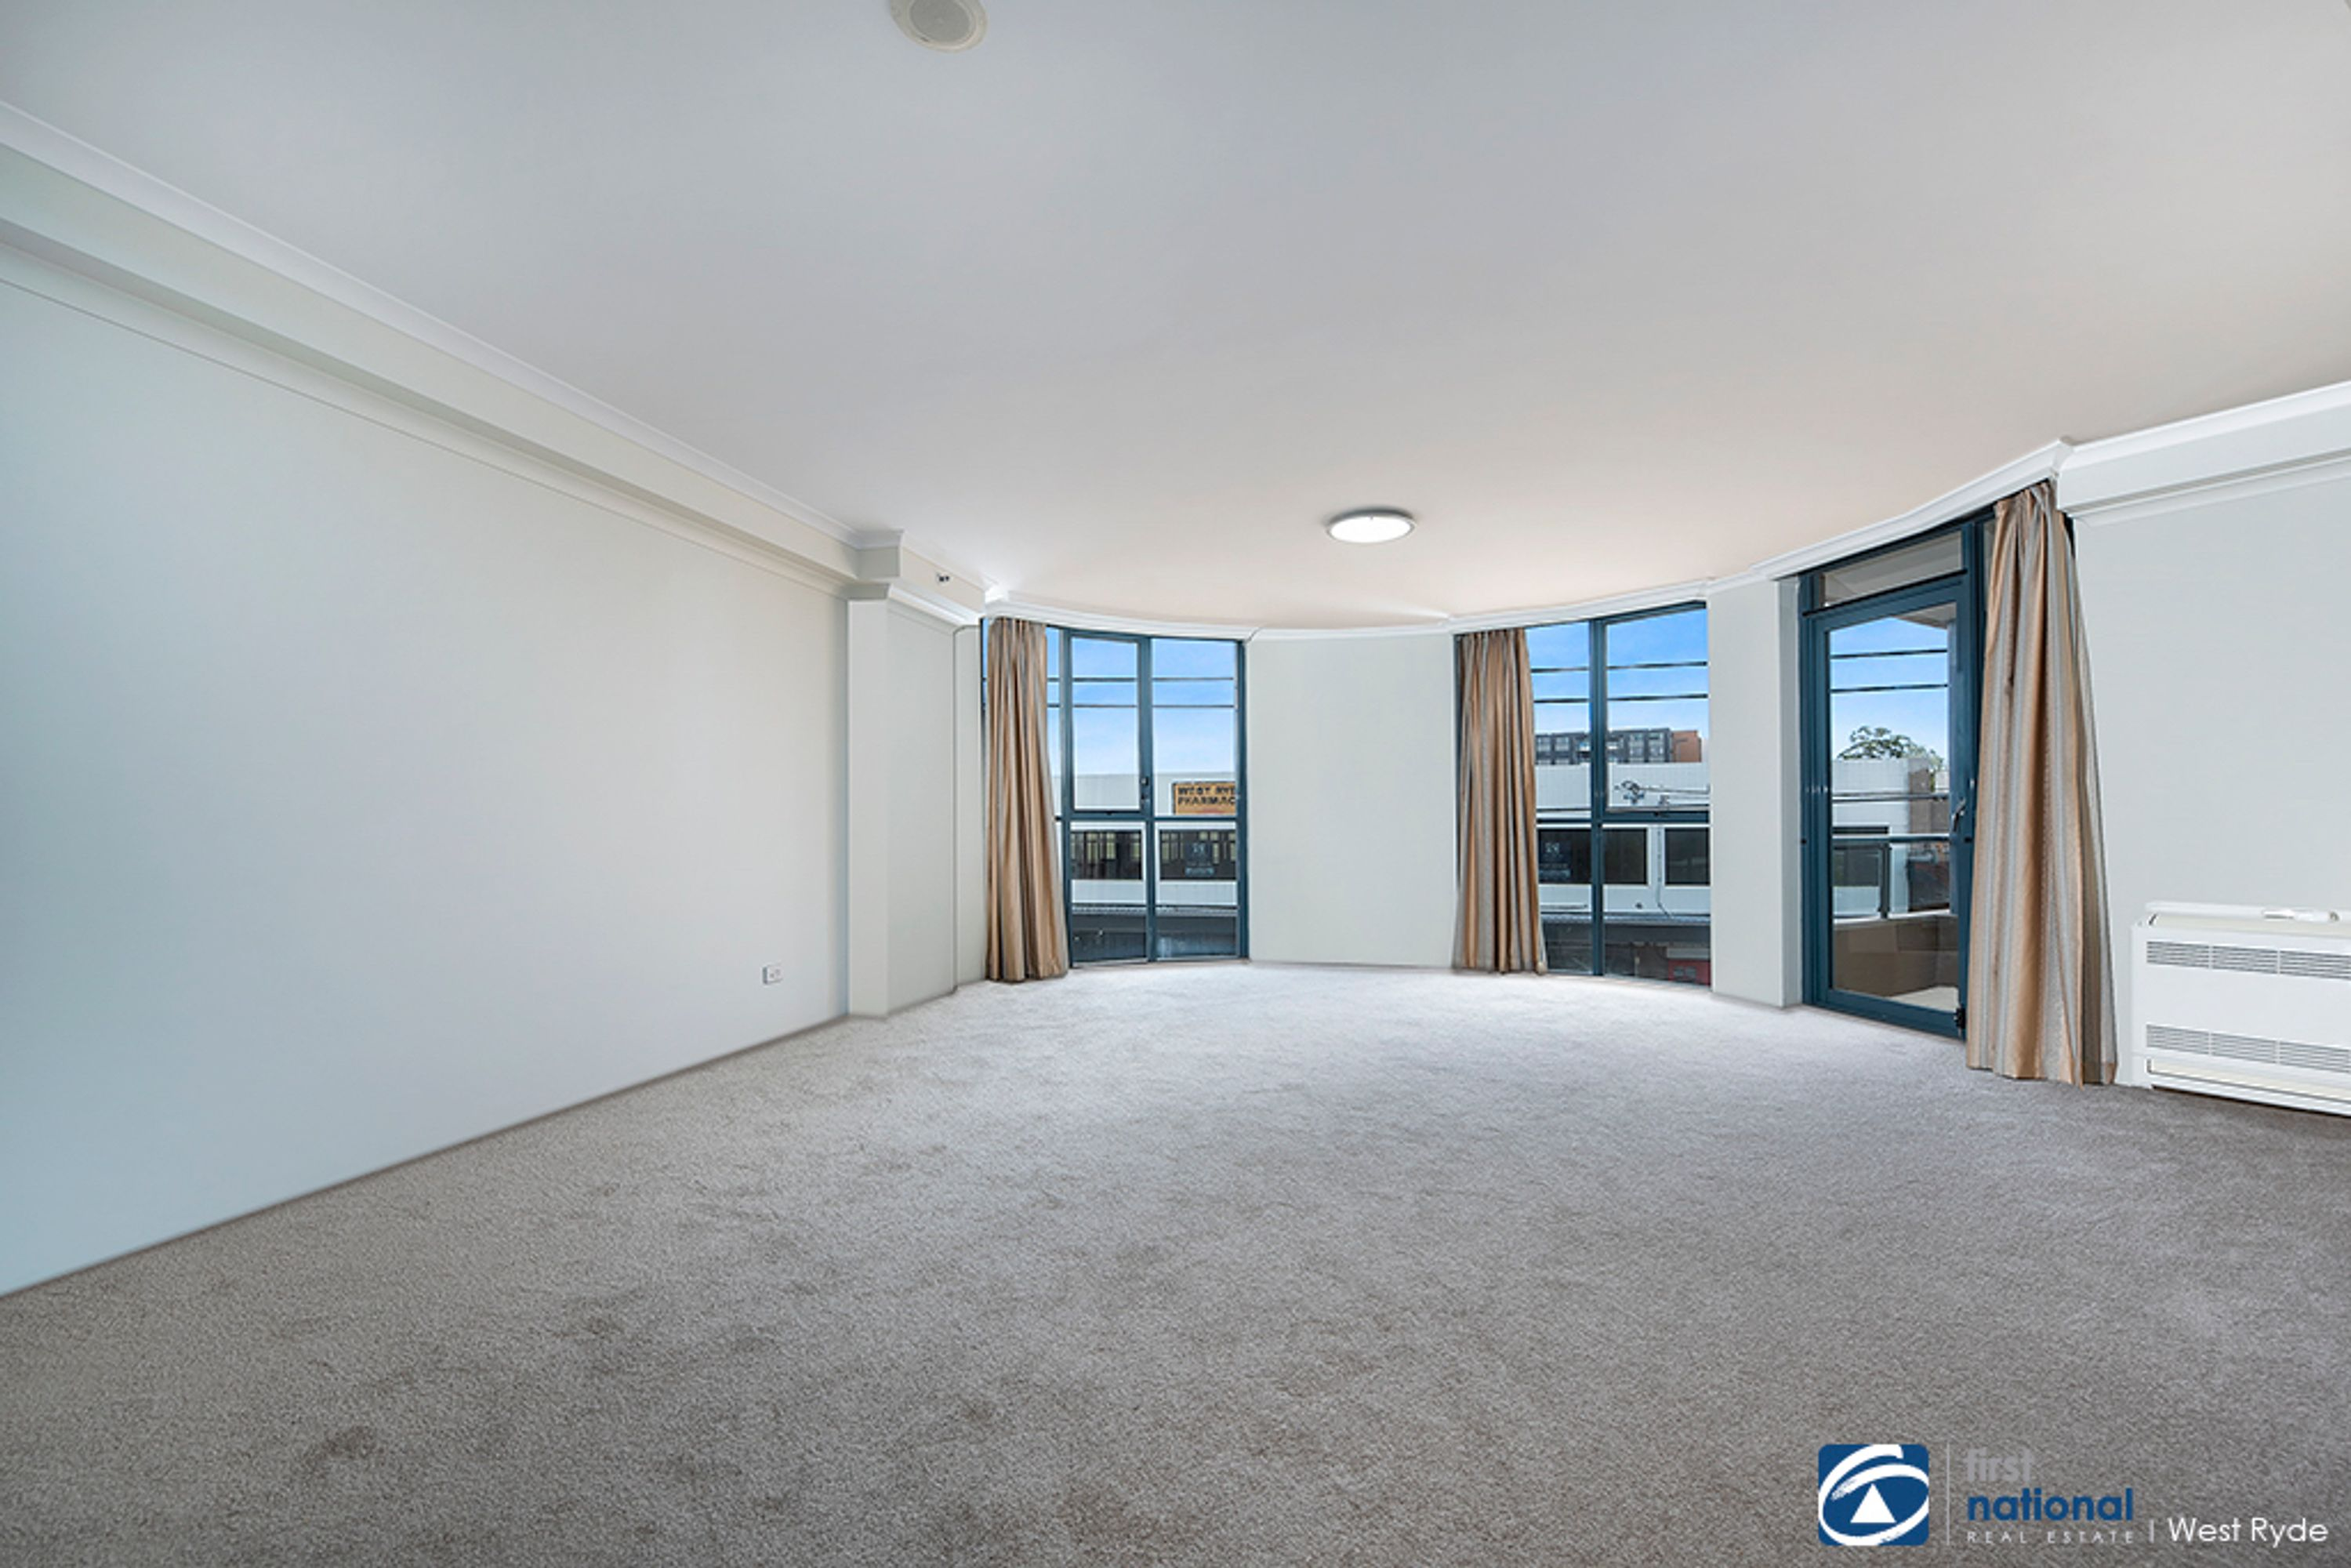 13/1-55 West Parade, West Ryde, NSW 2114